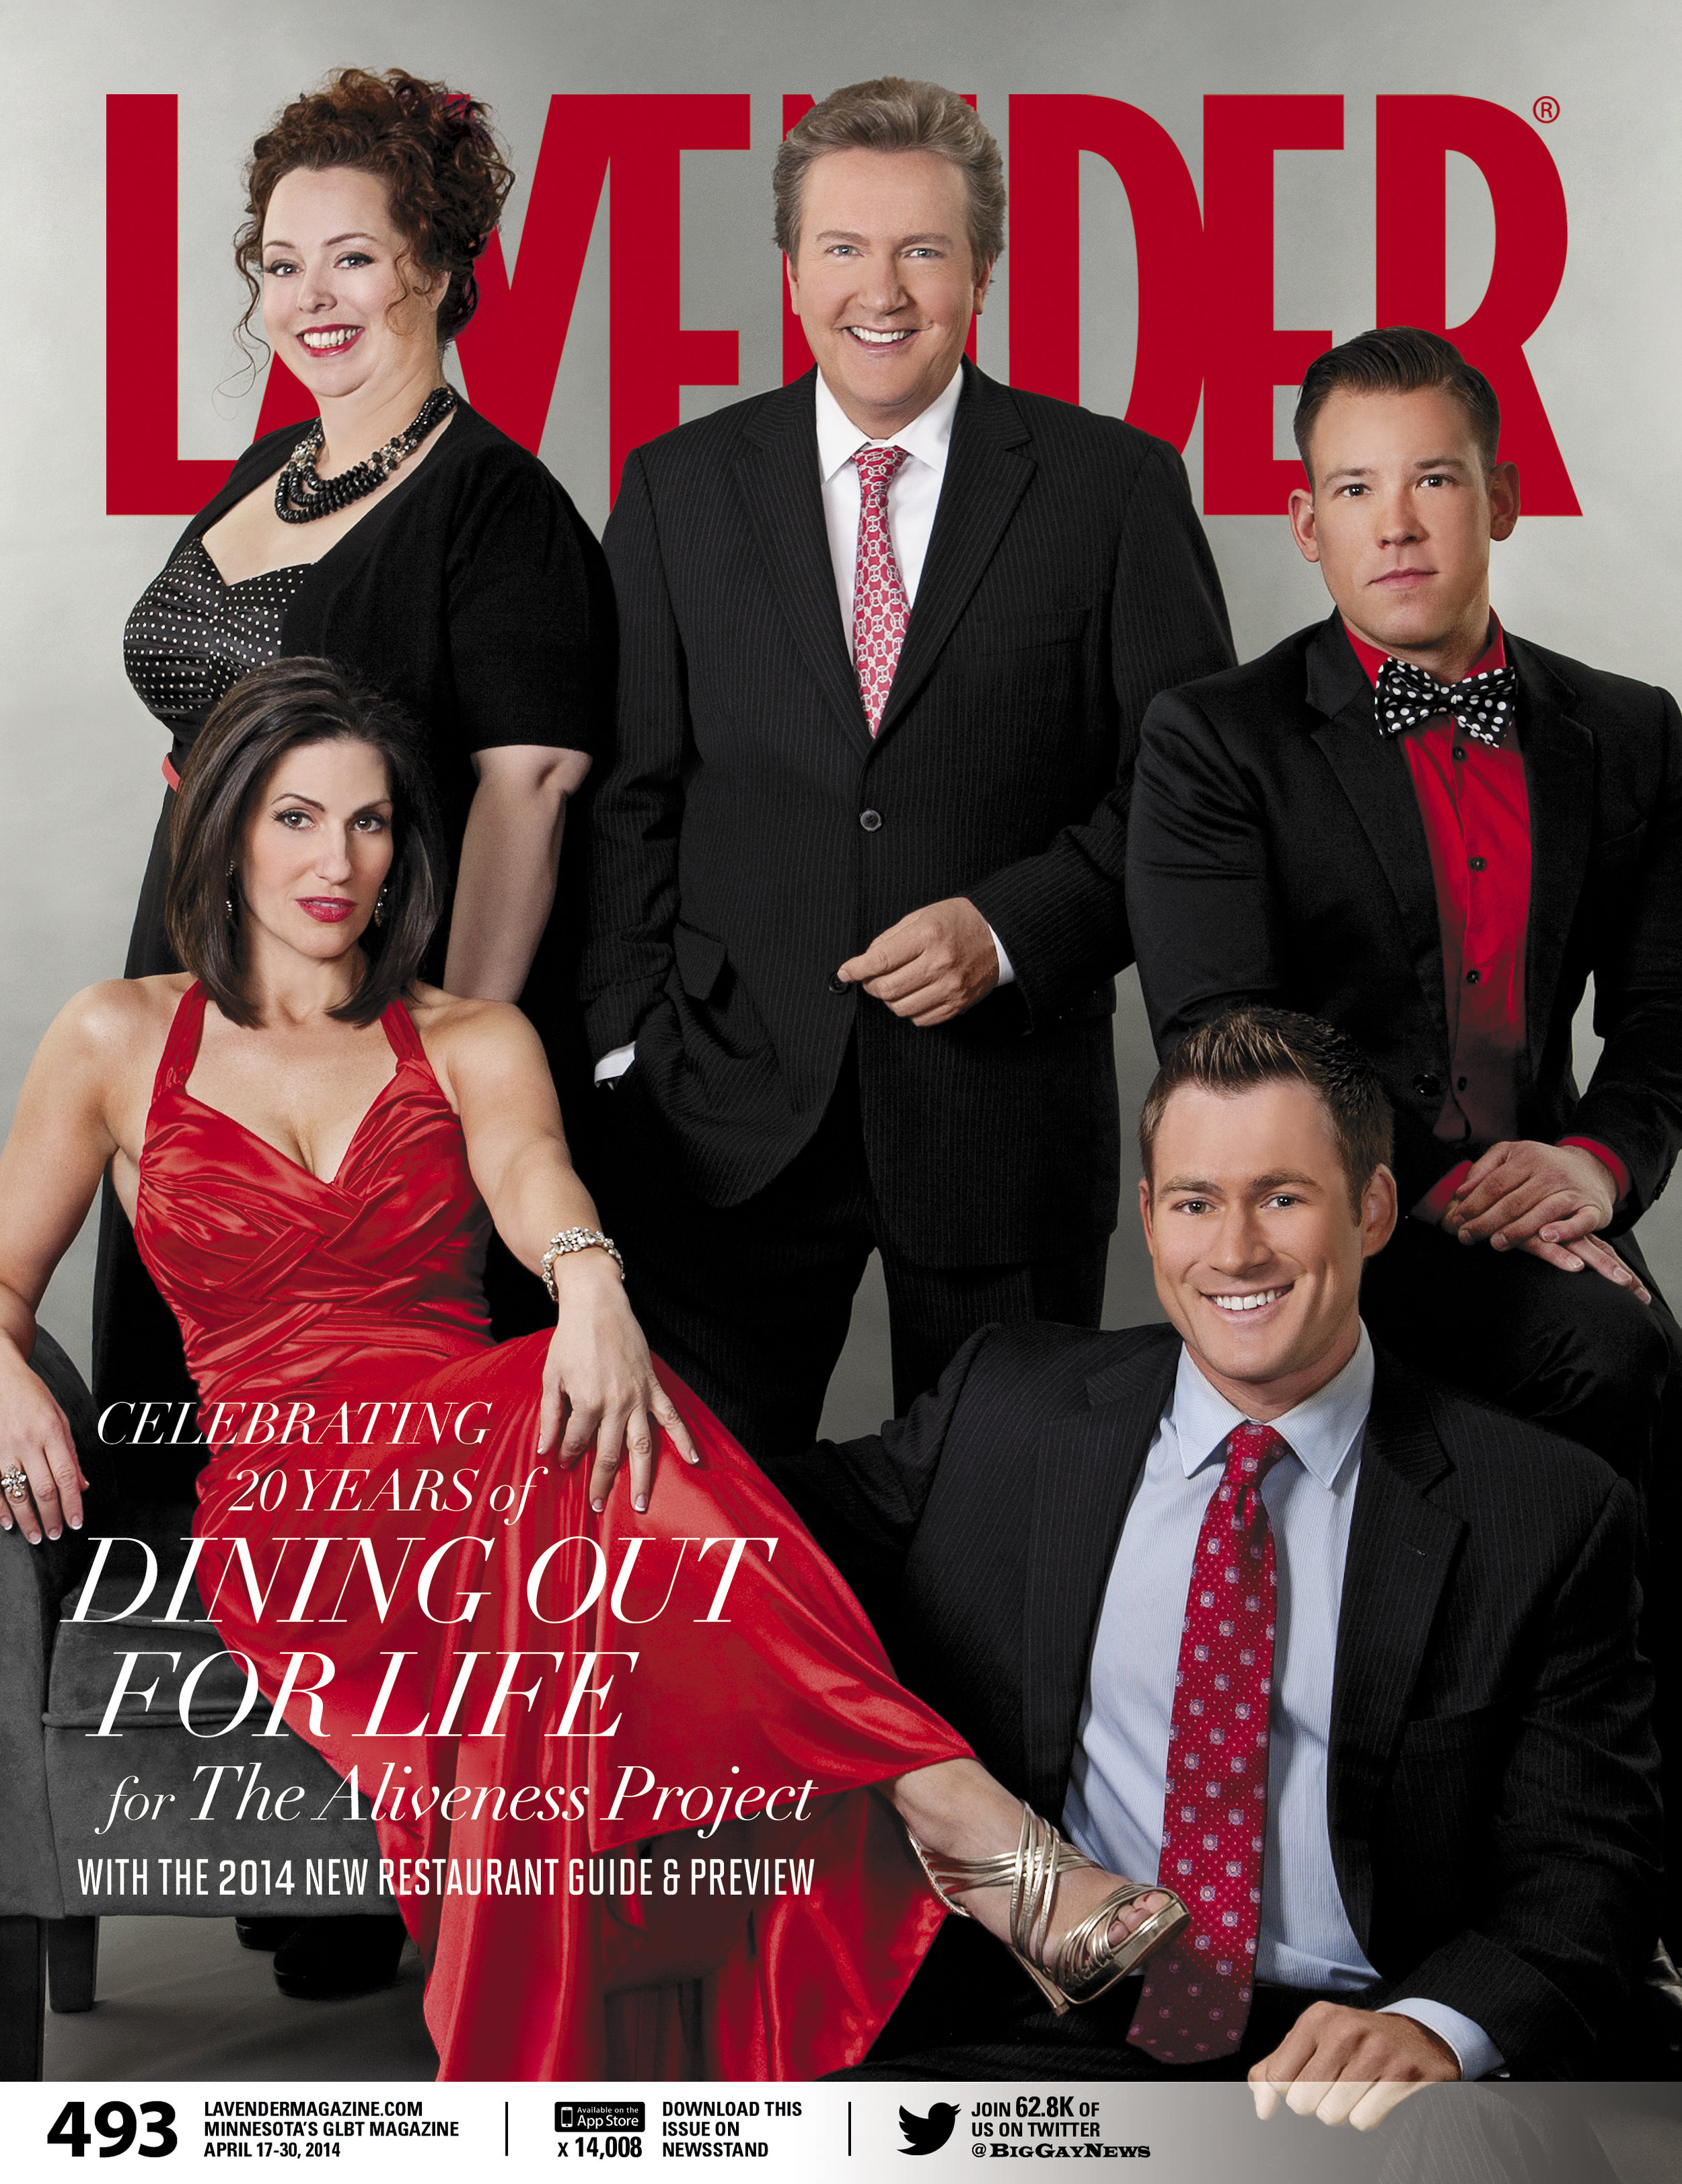 minneapolis-award-winning-hair-and-makeup-lavender-magazine